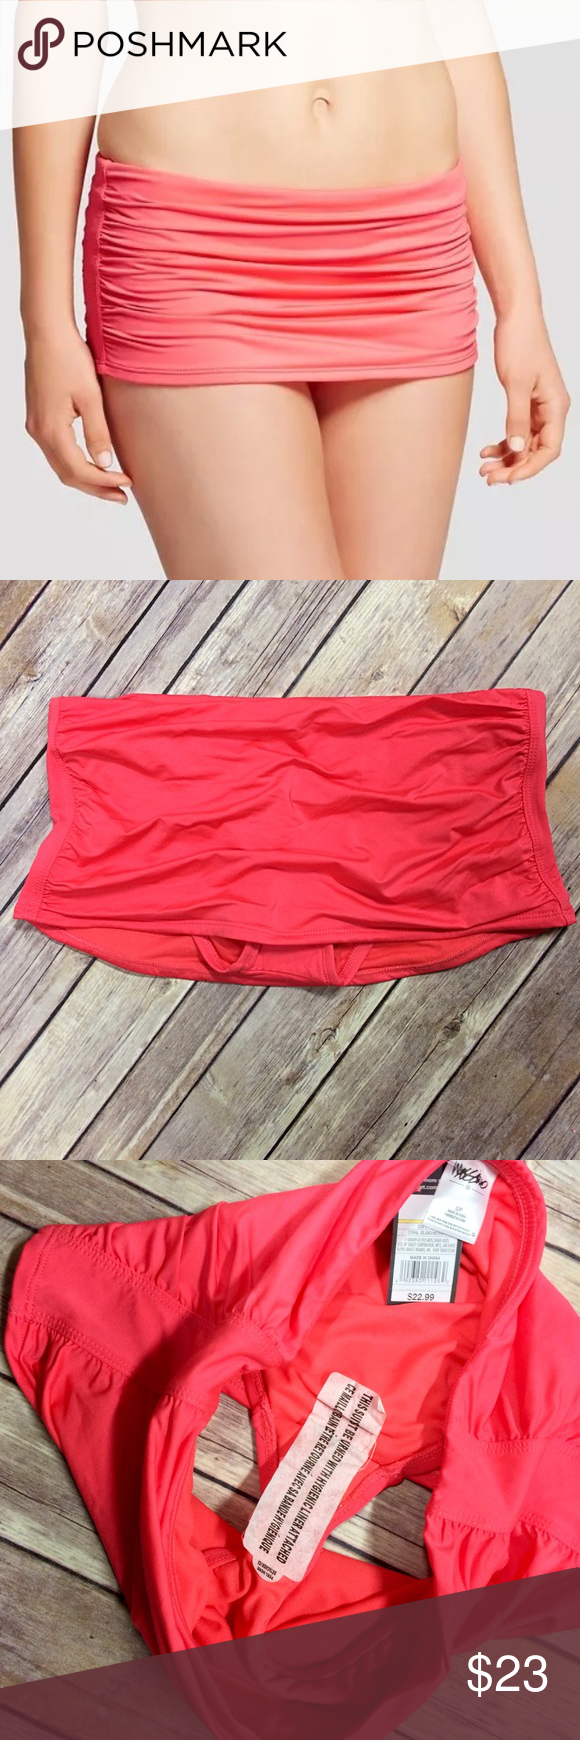 """Xhilaration Retro Ruched Coral Swim Skirt Small Make retro style modern in the Mossimo Shirred Skirt. This classic fit is shirred at the front and back and sits comfortably at the hips. This trendy bottom offers full coverage.  Item Specifics: Brand: Mossimo for Target Orig Price: $22.99 Style#: M05976 Color: Coral Island New with Tags: Yes Materials: 90% nylon, 10% spandex   Sizing Info from Website: Size: Small - 4/6 Waist: 27.5"""" - 28.5"""" approx Hips: 37"""" - 38"""" approx Xhilaration Swim…"""